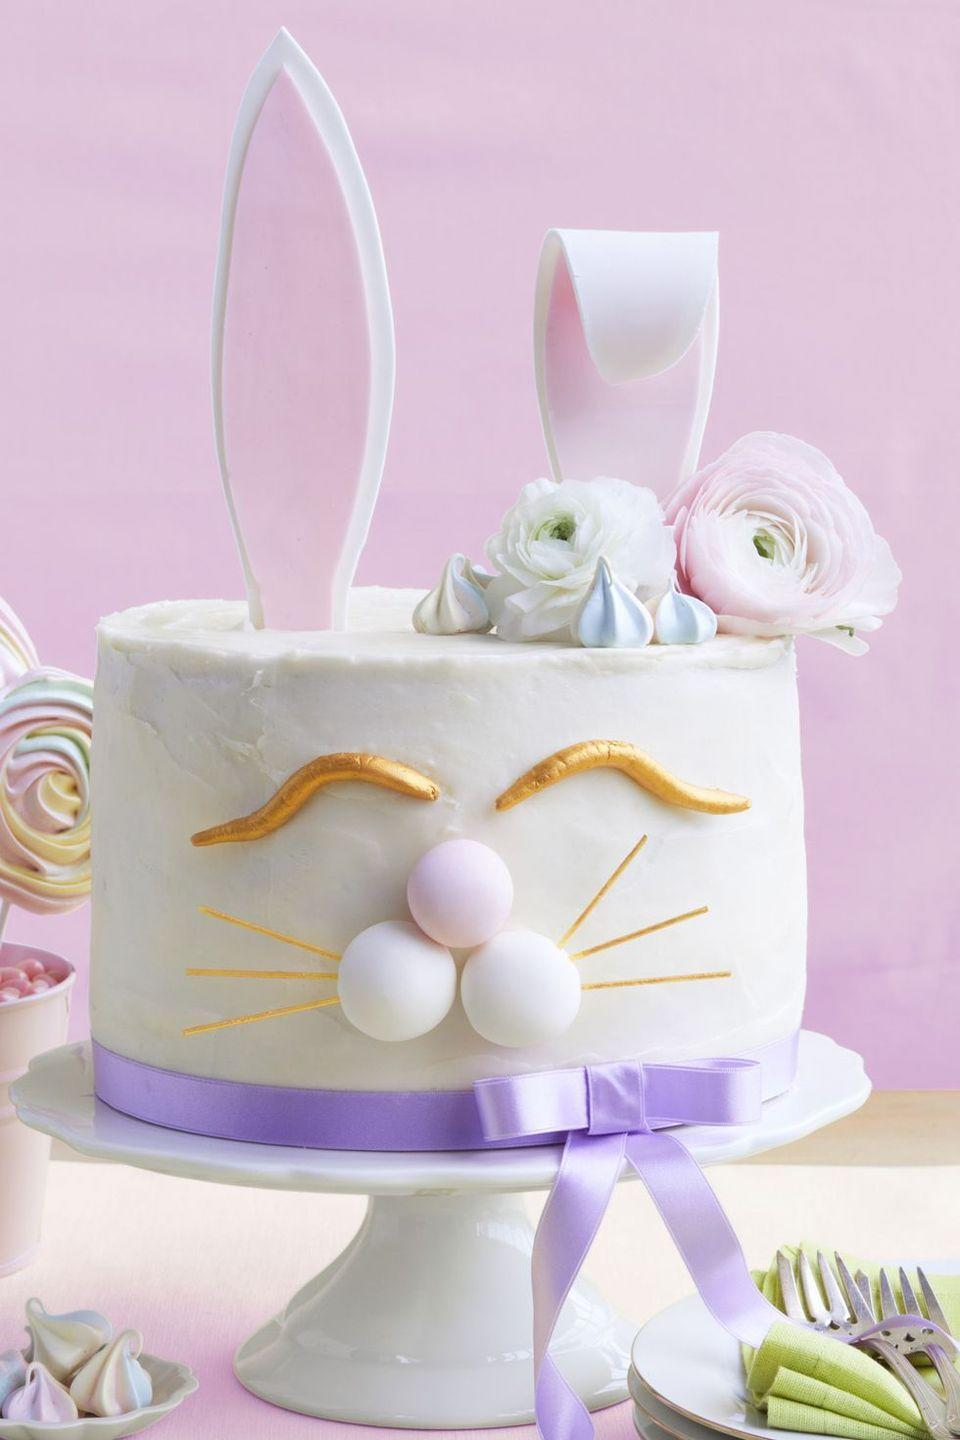 """<p>The ultimate tribute to the Easter Bunny, this cake is full of character and charm, and it tastes pretty great, too. </p><p><strong><em><a href=""""https://www.womansday.com/food-recipes/food-drinks/a19122506/carrot-bunny-cake-recipe/"""" rel=""""nofollow noopener"""" target=""""_blank"""" data-ylk=""""slk:Get the Carrot Bunny Cake recipe."""" class=""""link rapid-noclick-resp"""">Get the Carrot Bunny Cake recipe. </a></em></strong></p>"""